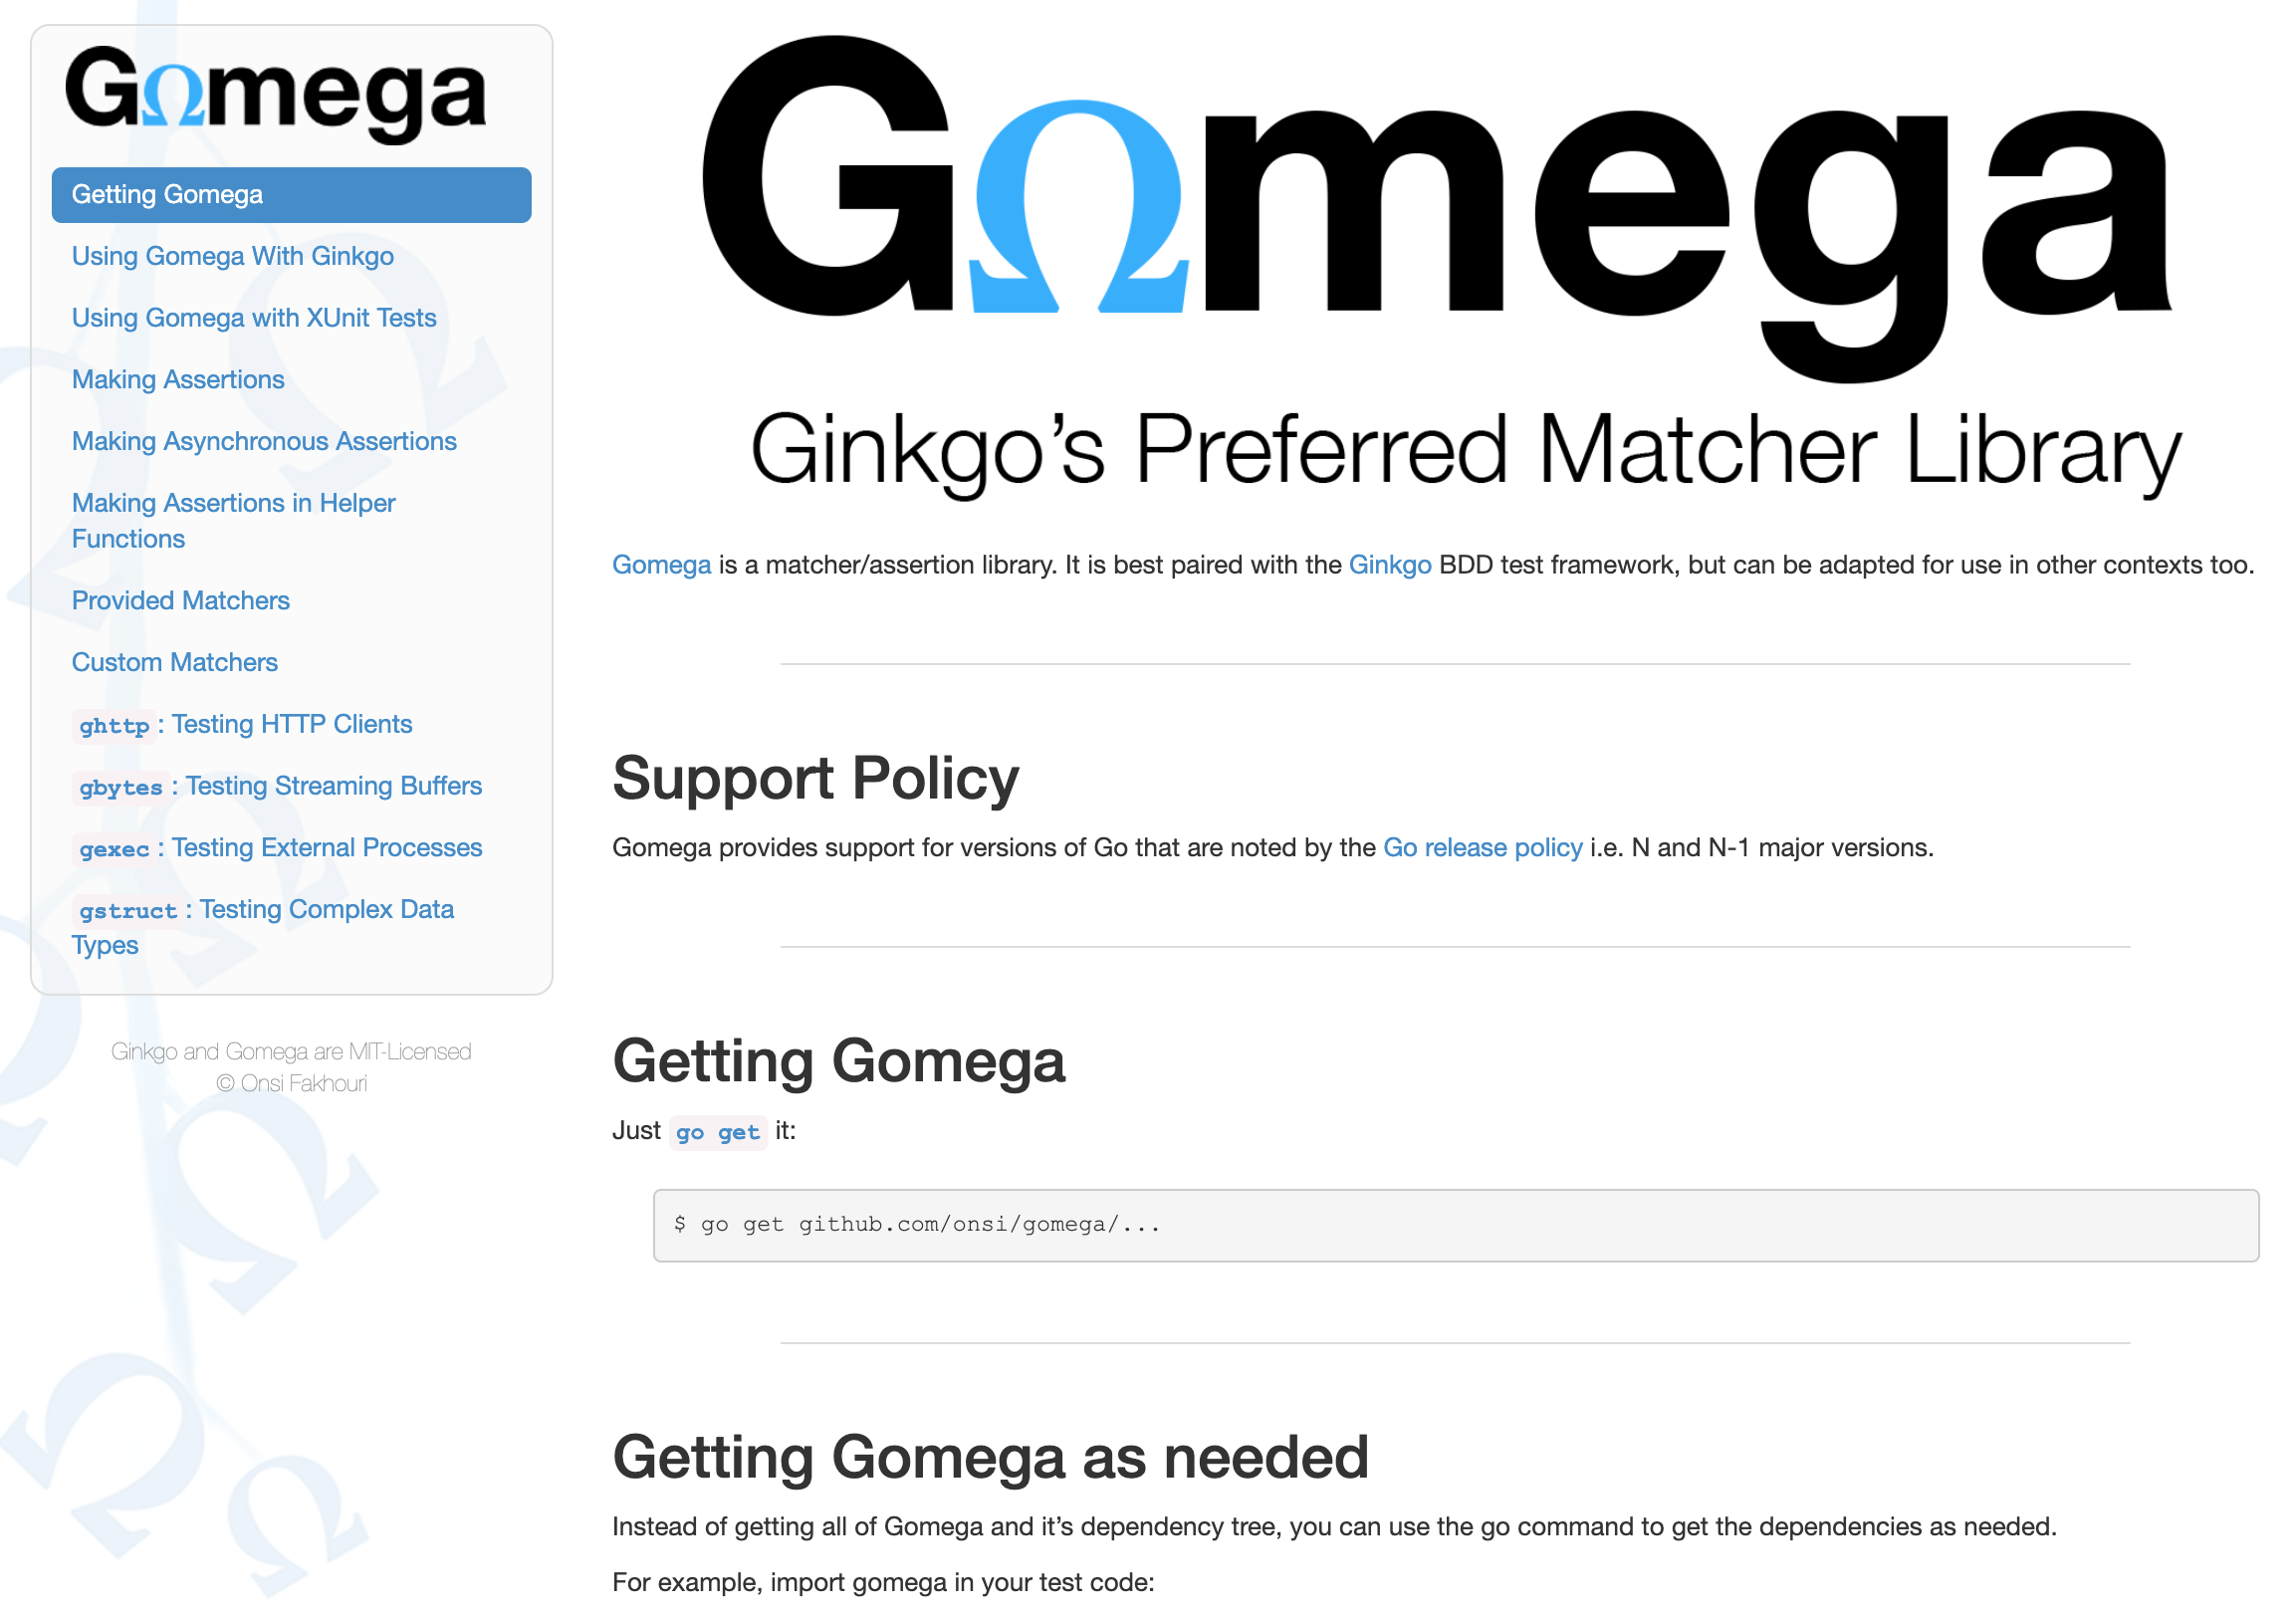 Gomega provides support for versions of Go